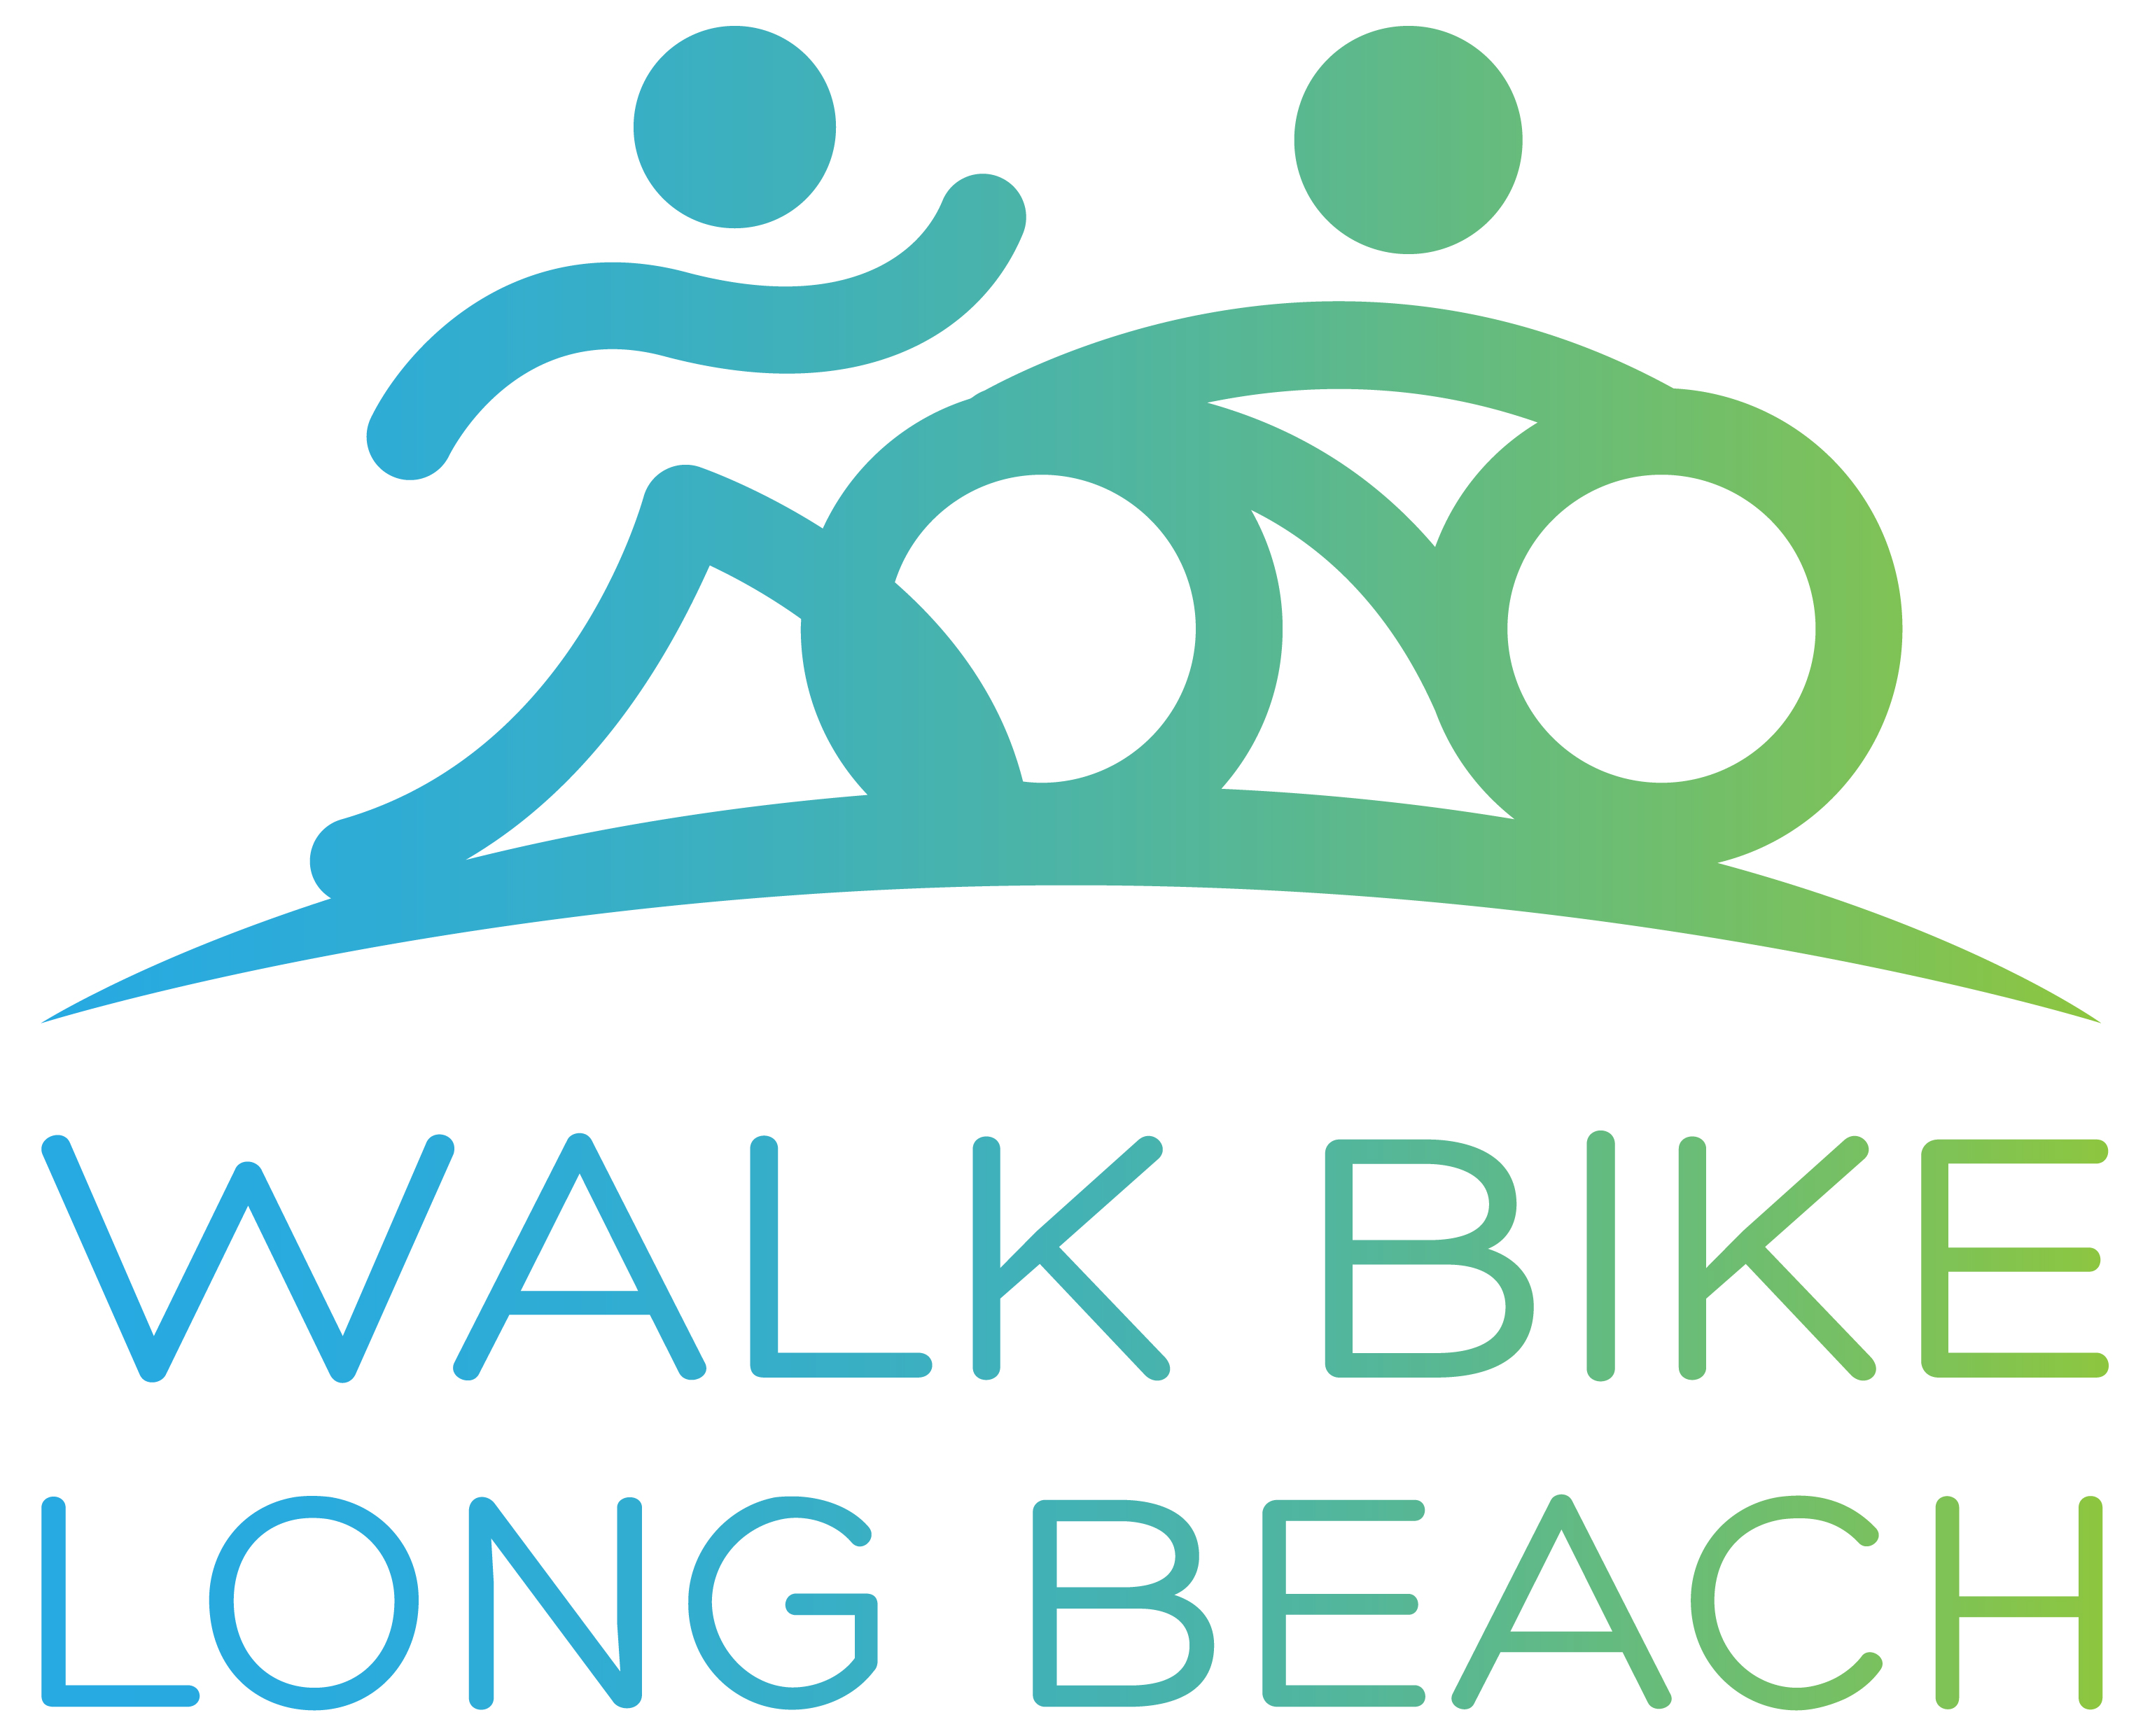 Walk-bike-long-beach-logo-01.jpg